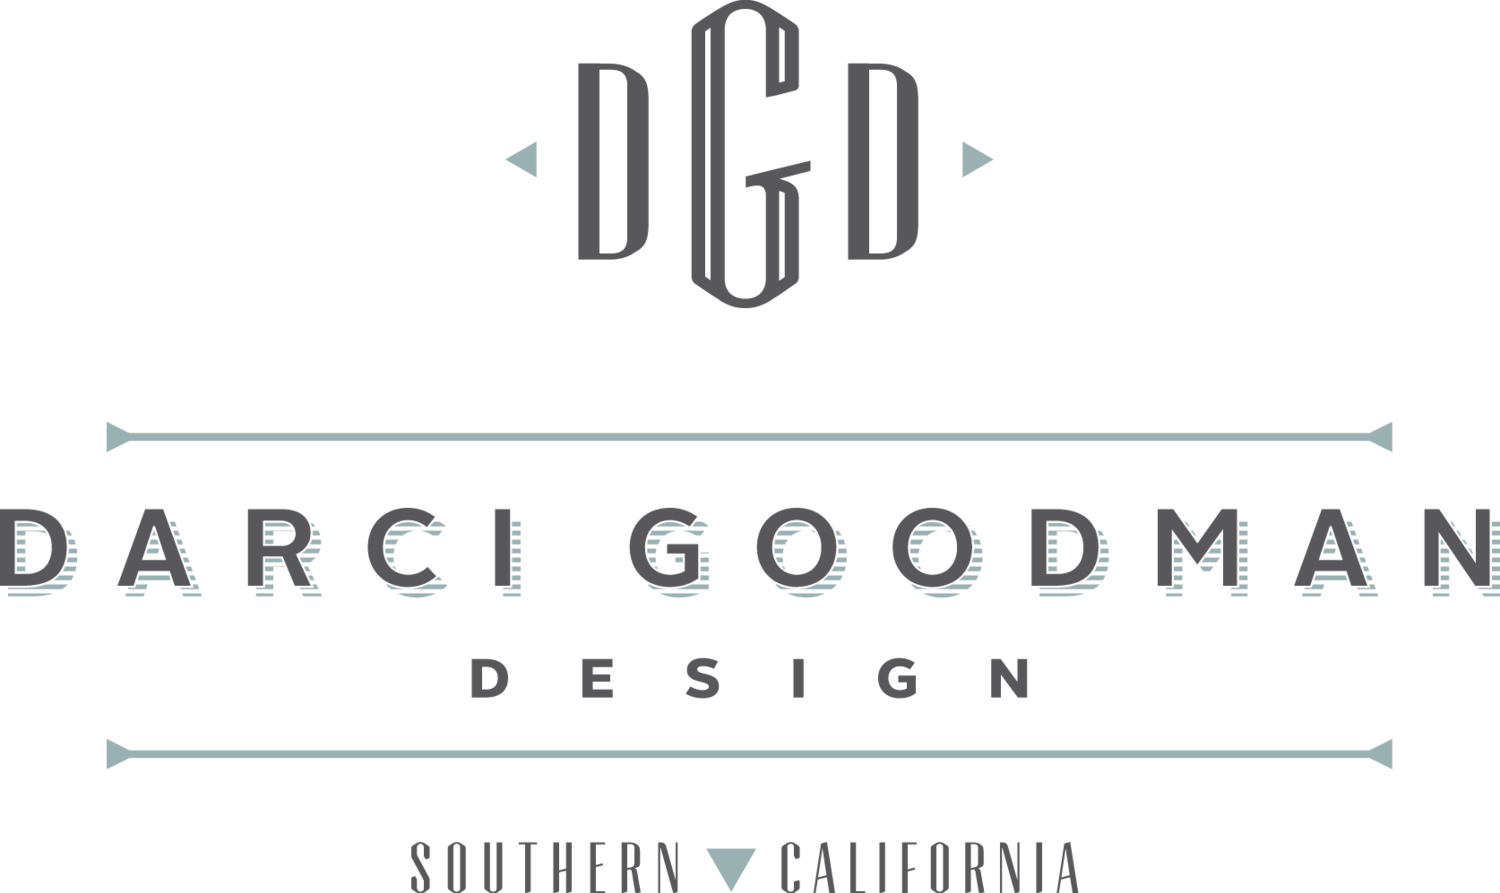 Darci Goodman Design